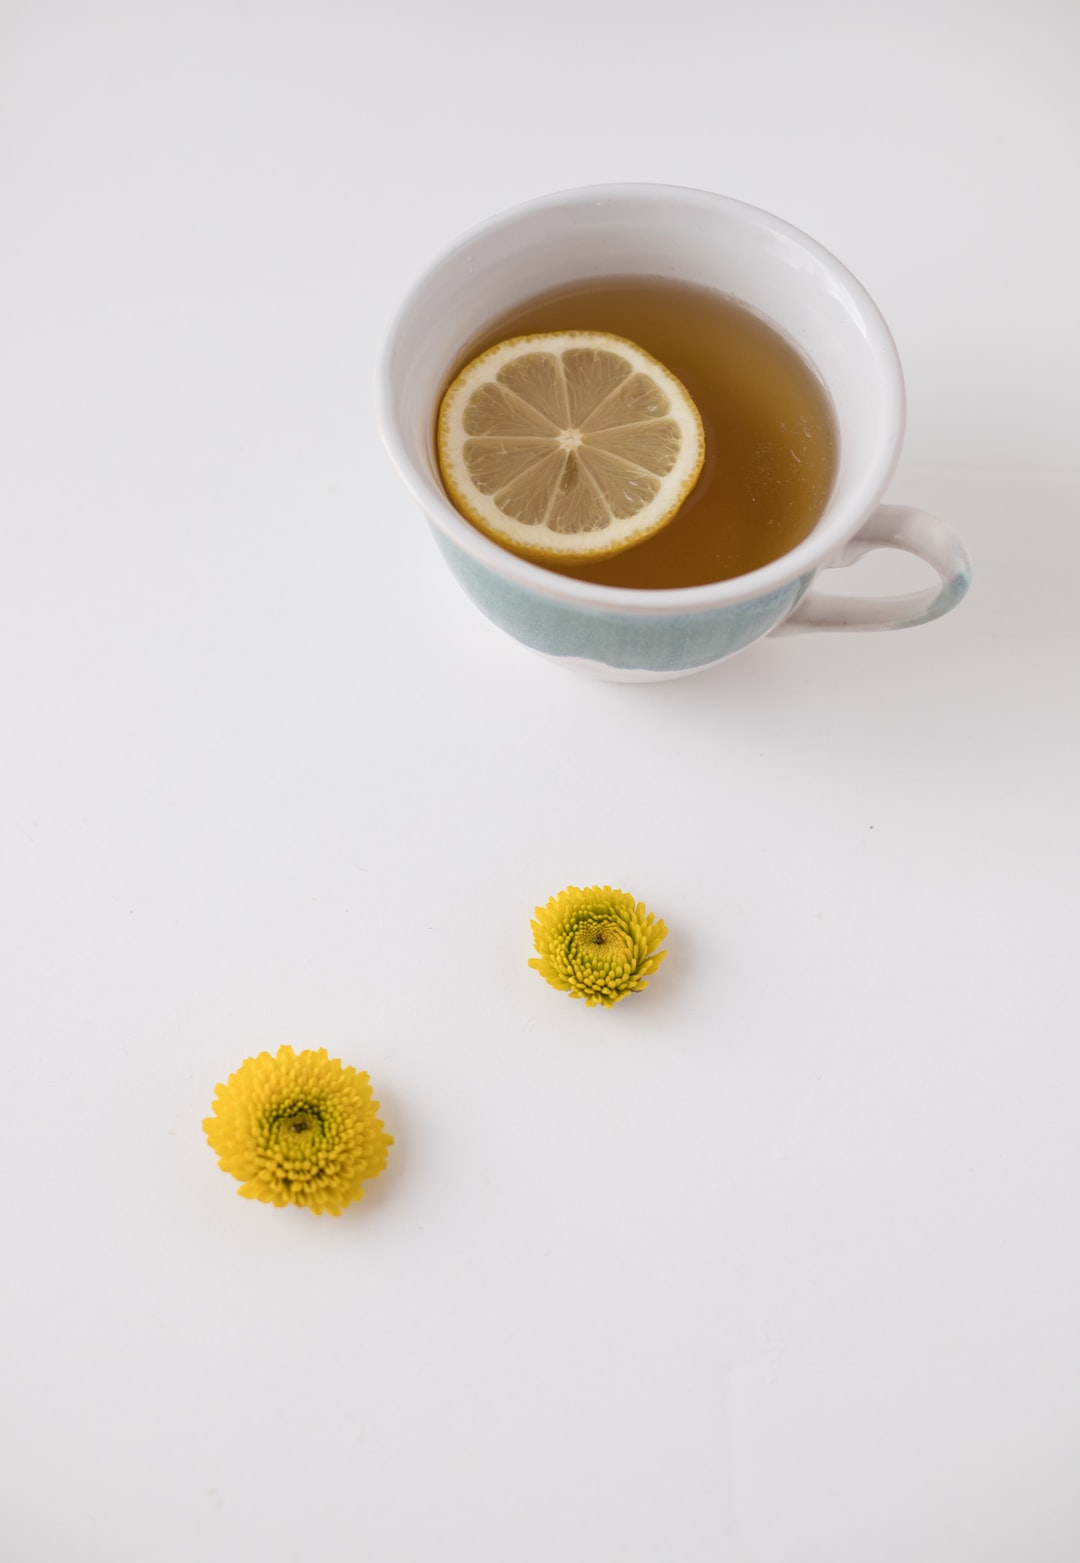 Tea with lemon and yellow flowers